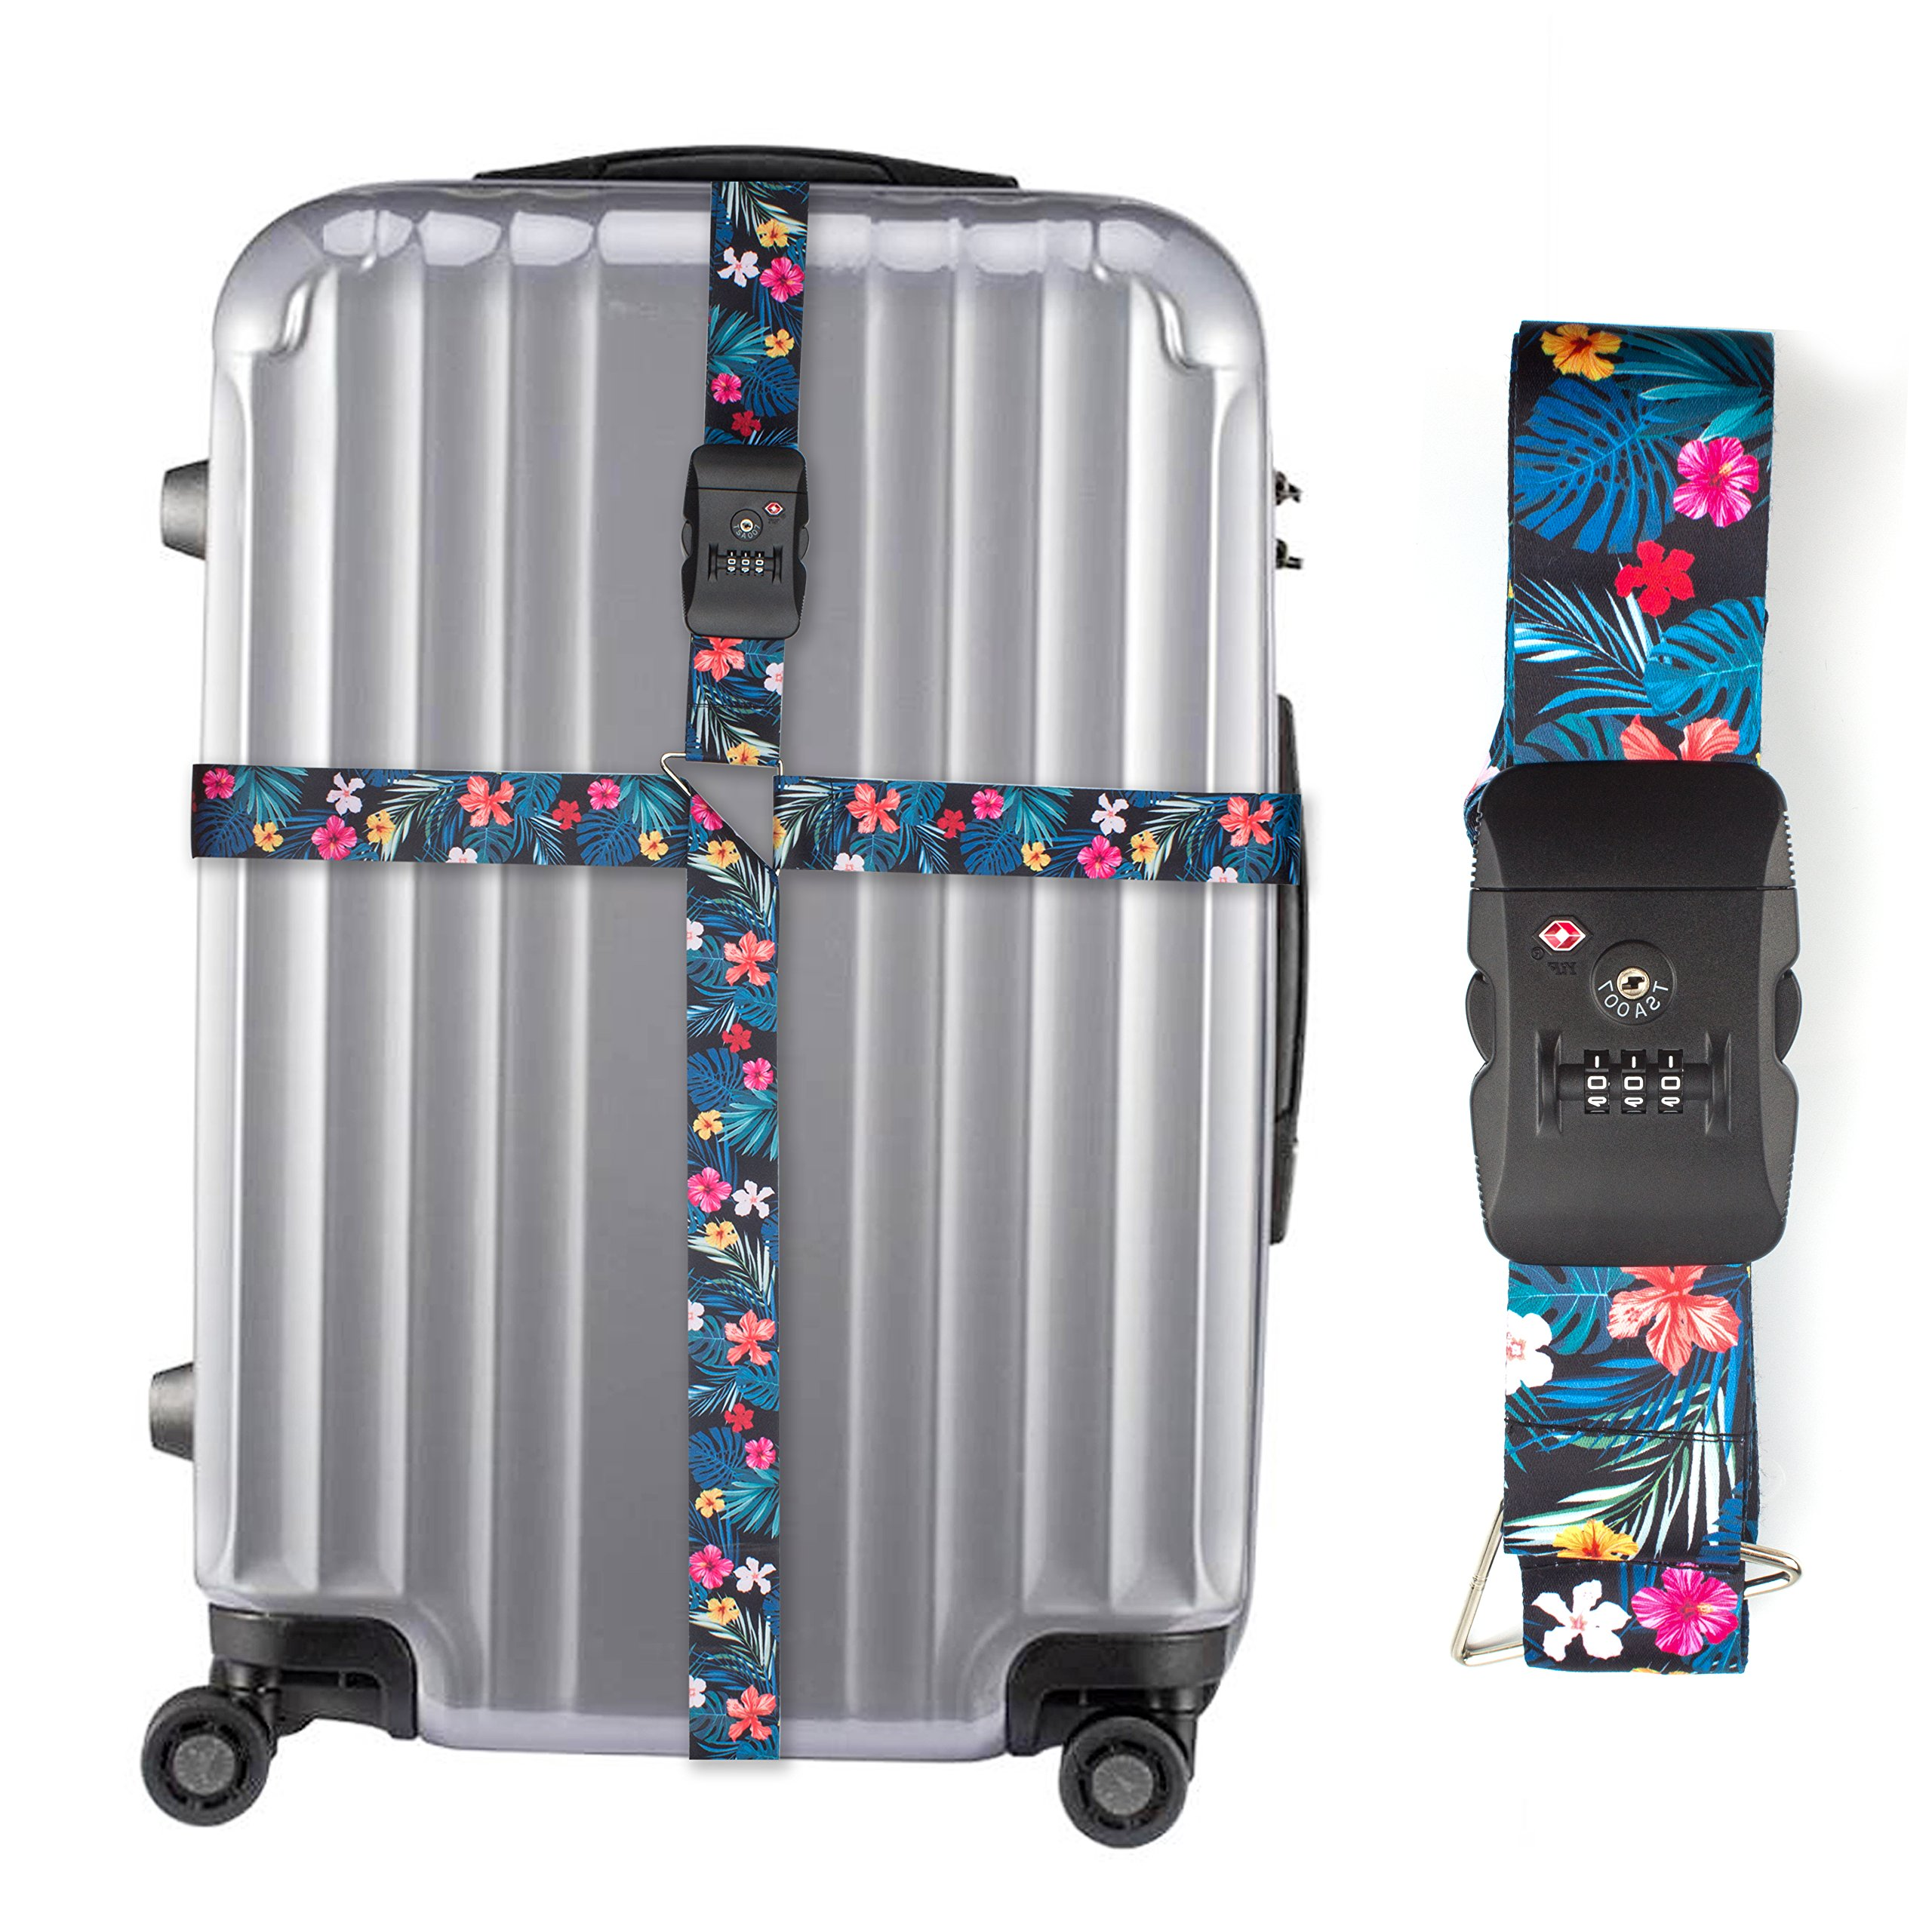 Luggage Suitcase Straps with TSA Approved lock – Long Cross Adjustable Suitcase Belts With Floral Design for Girls Women